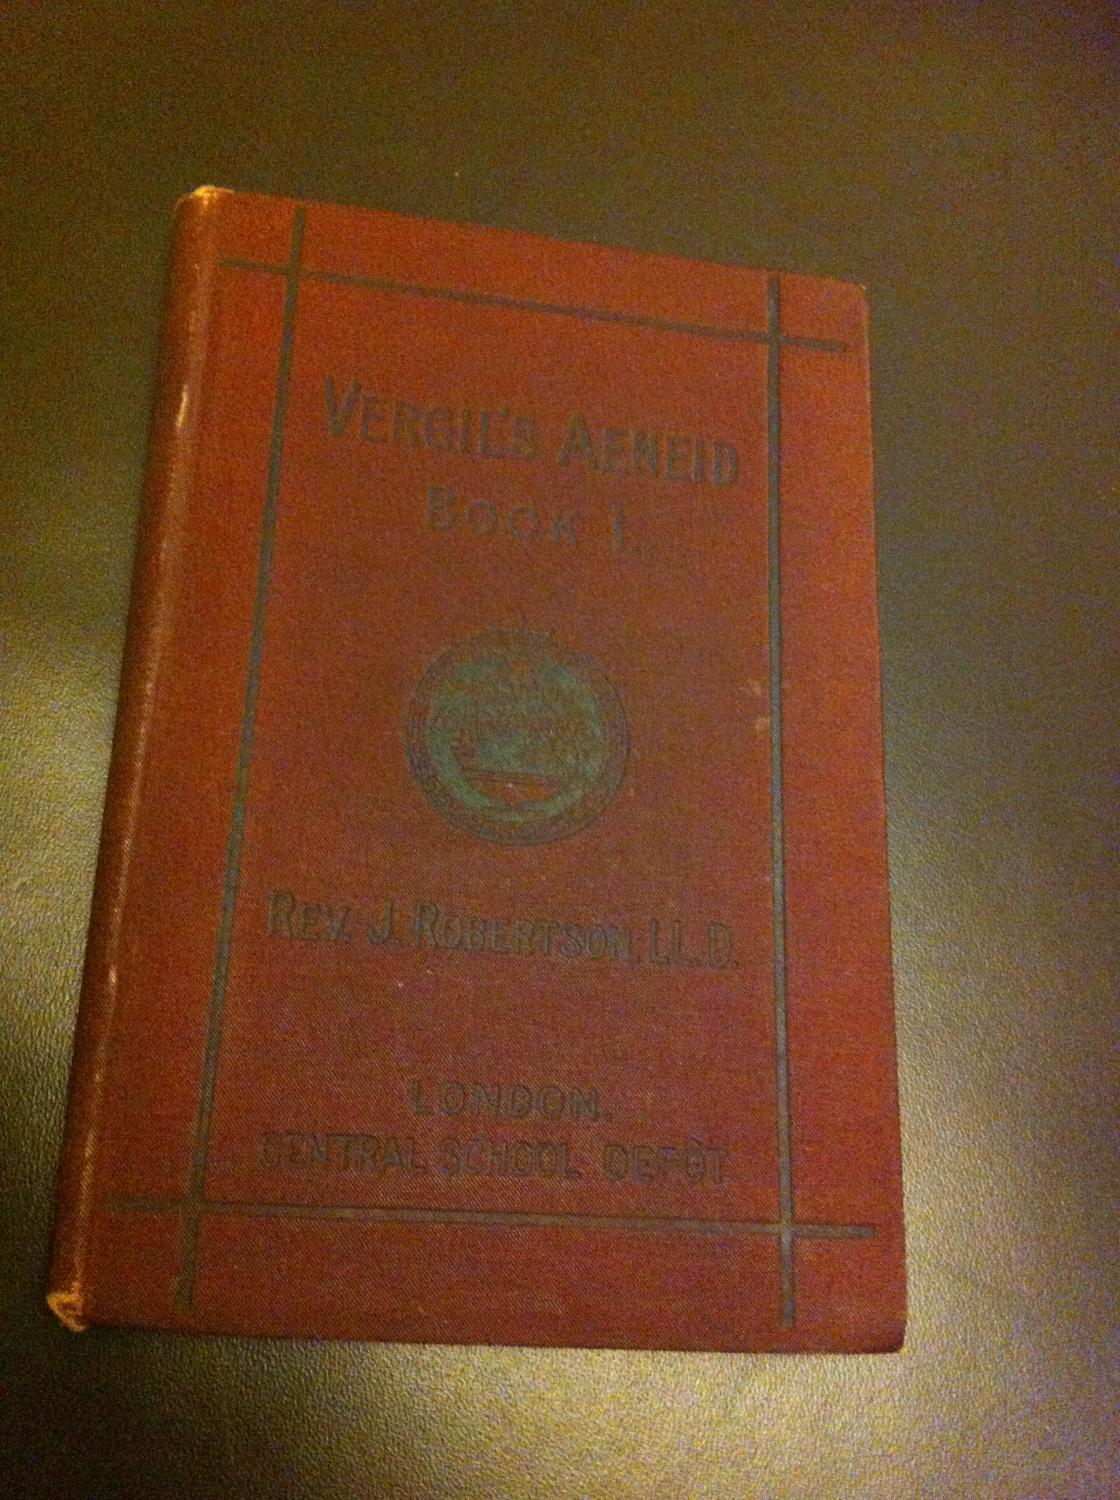 Vergil's Aeneid, Book I., with Examination Papers, Notes and Vocabulary Robertson, J. Good Hardcover